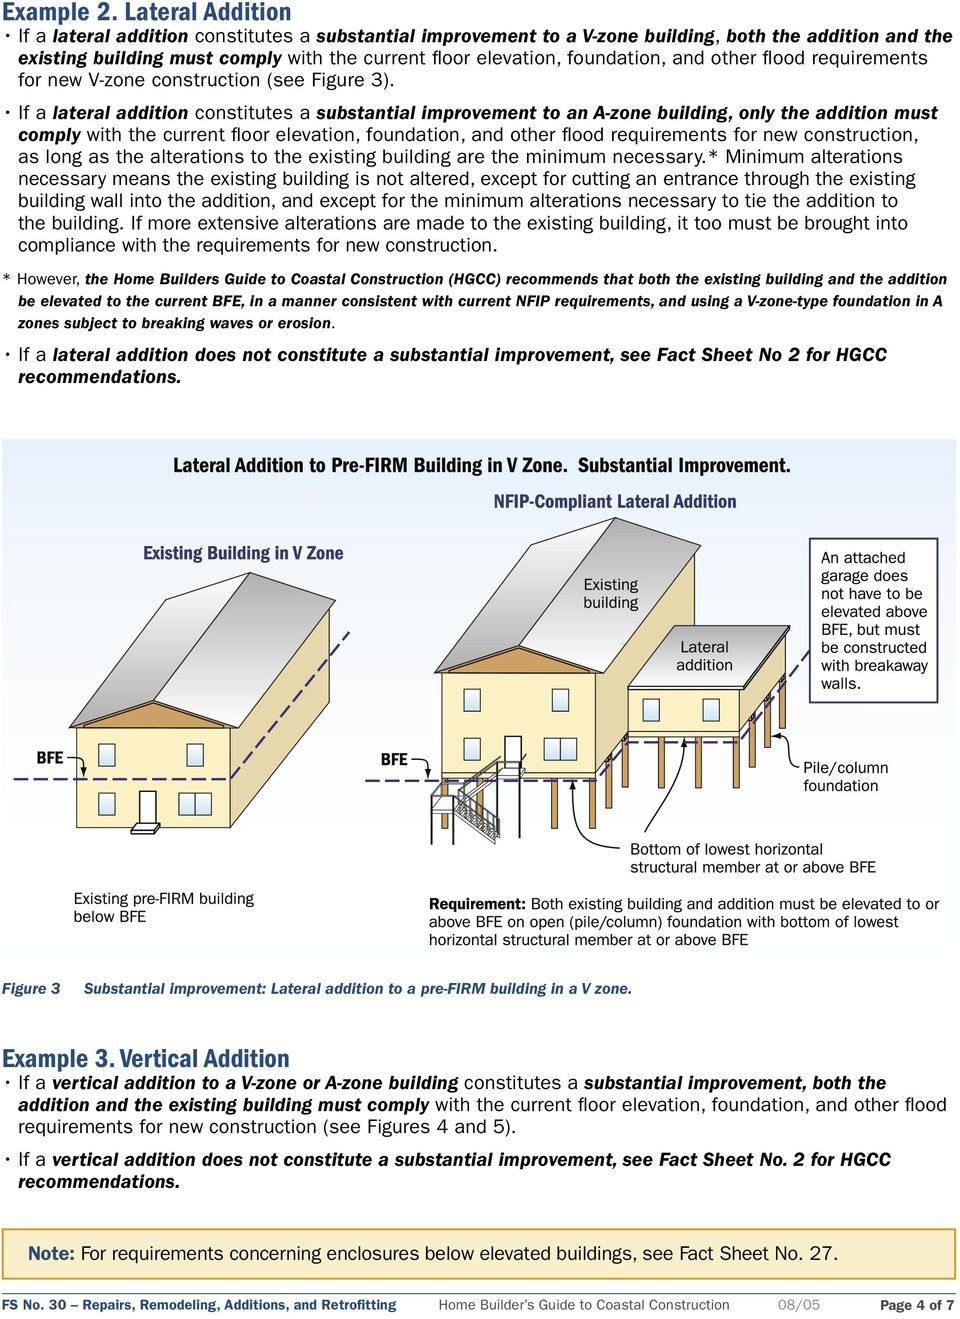 foundation, and other flood requirements for new V-zone construction (see Figure 3).